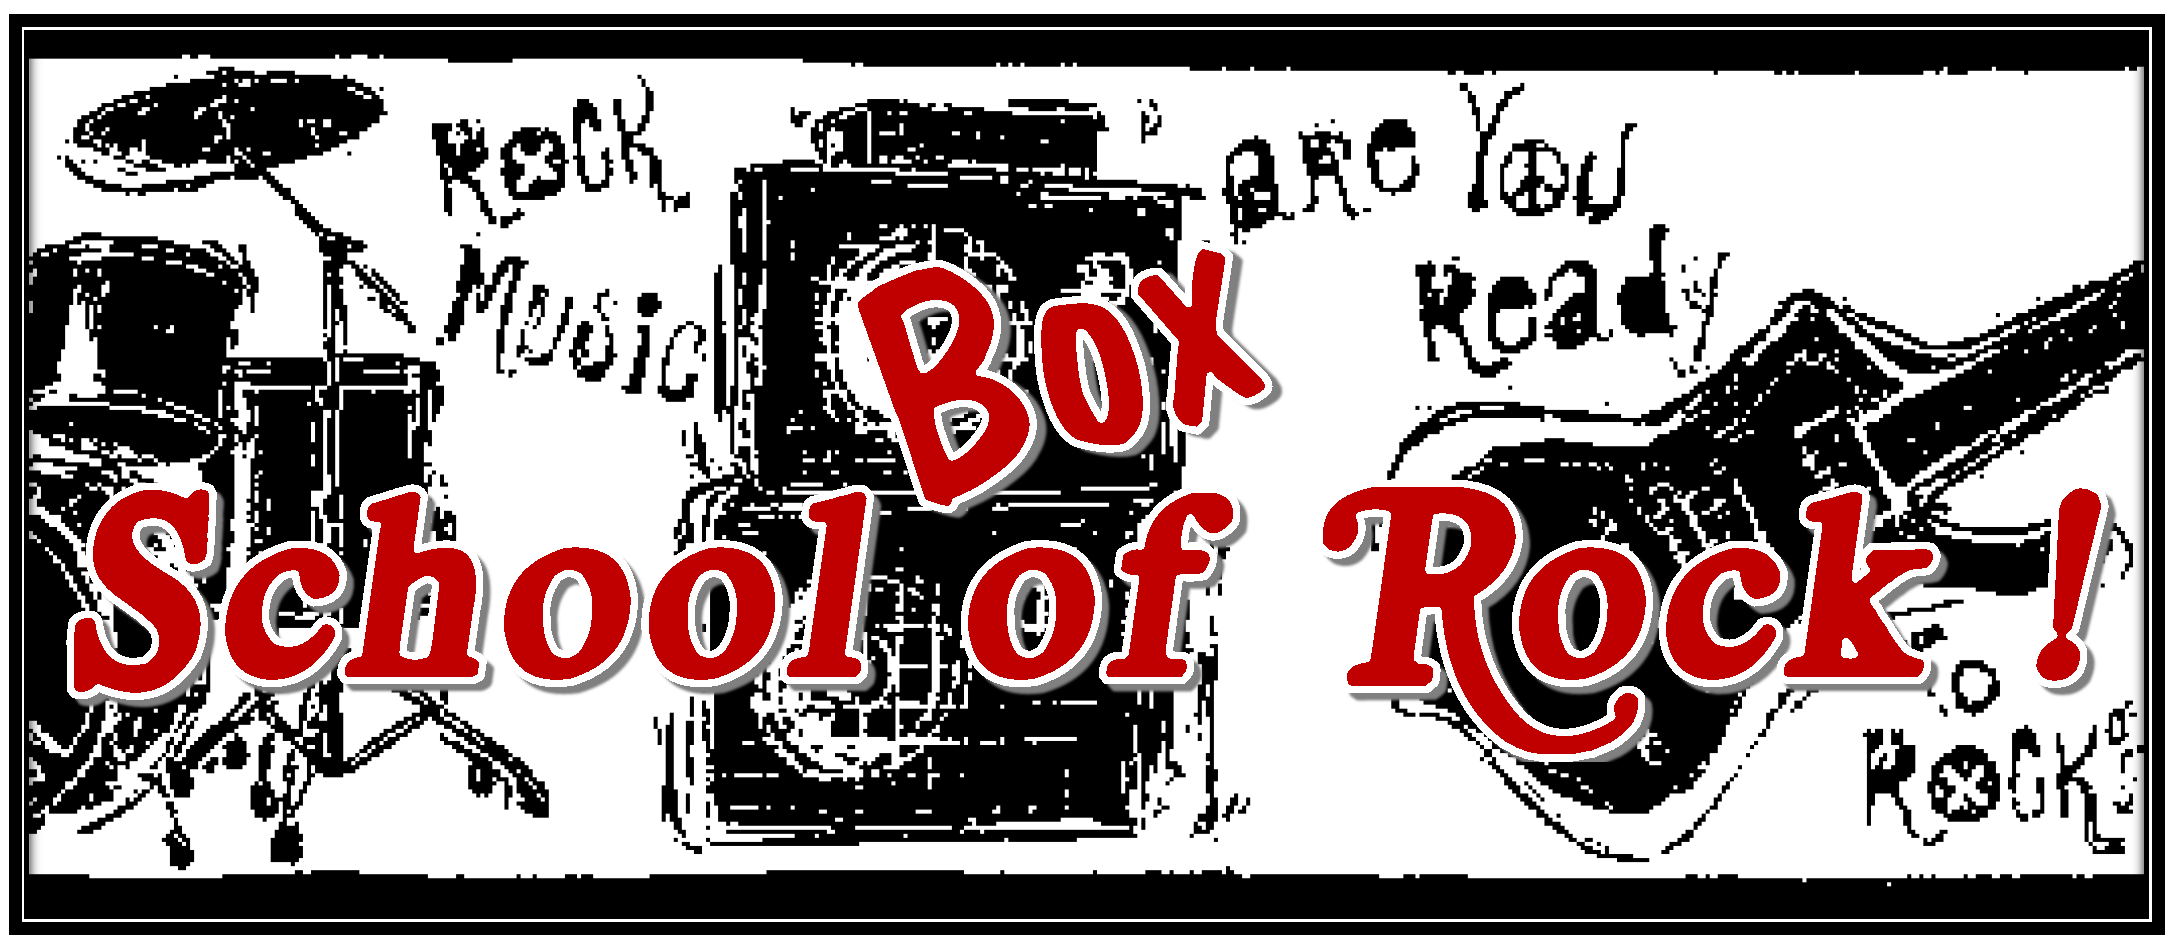 Box School of Rock